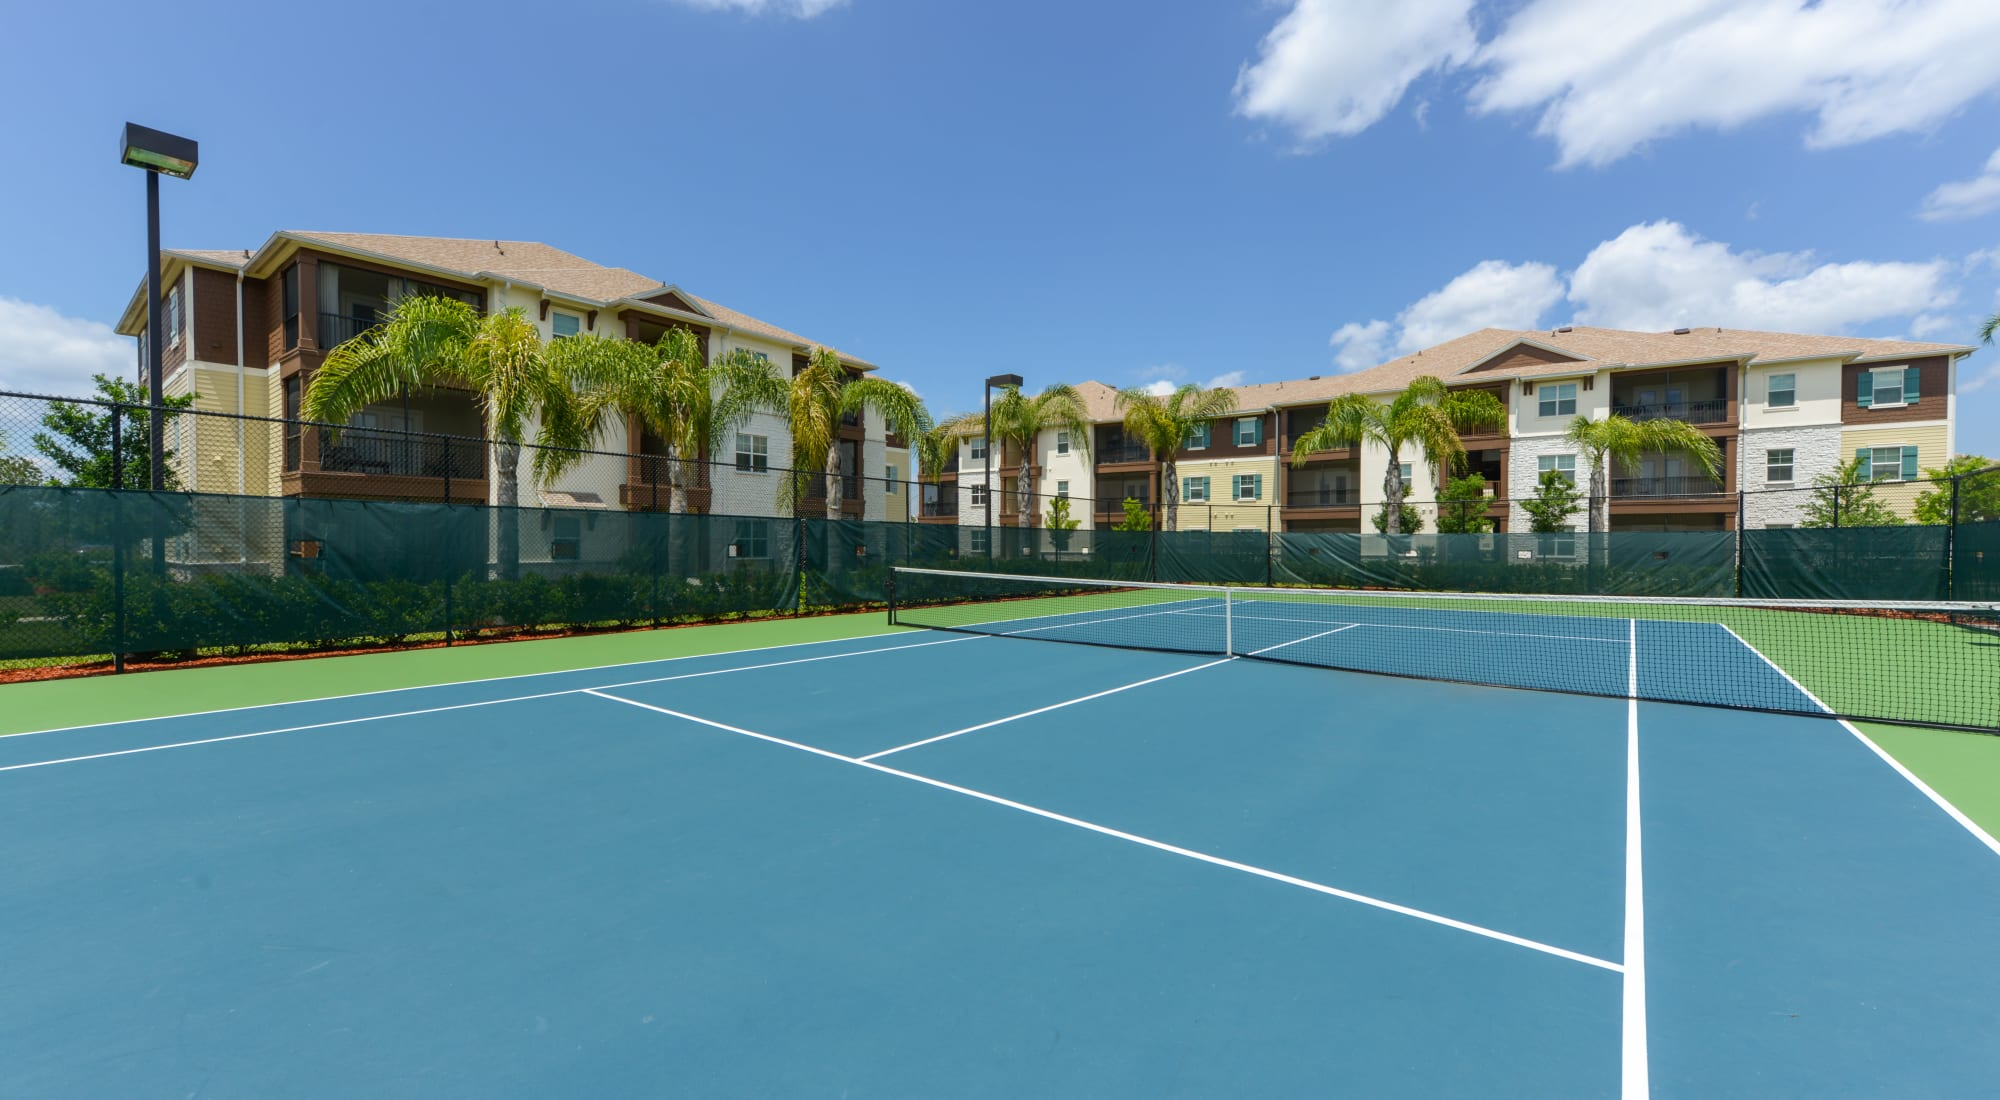 Apartments in Jacksonville, Florida at Cabana Club and Galleria Club